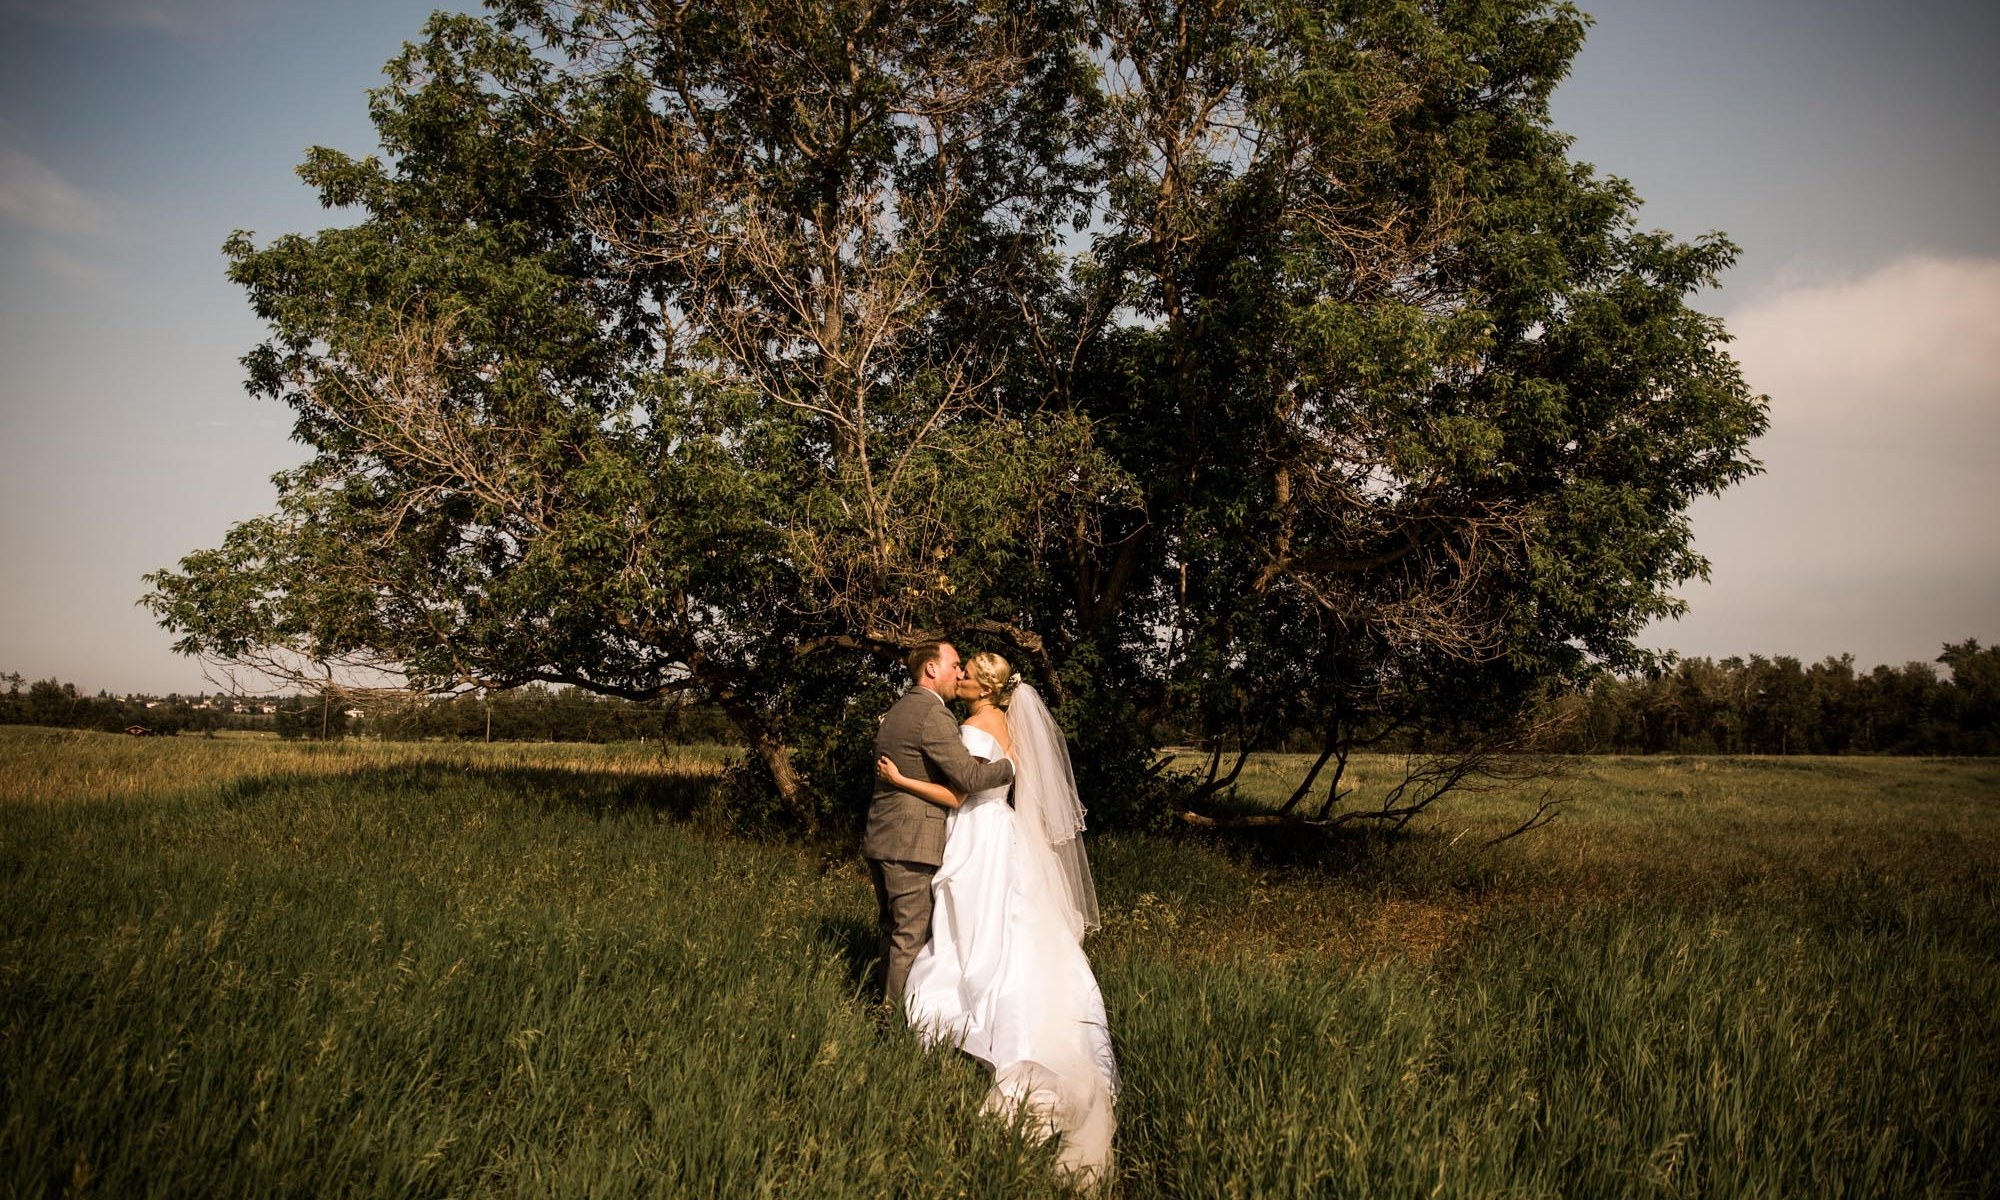 Calgary wedding photographer, the bride and groom sharing an intimate moment at Fish Creek Park in Calgary